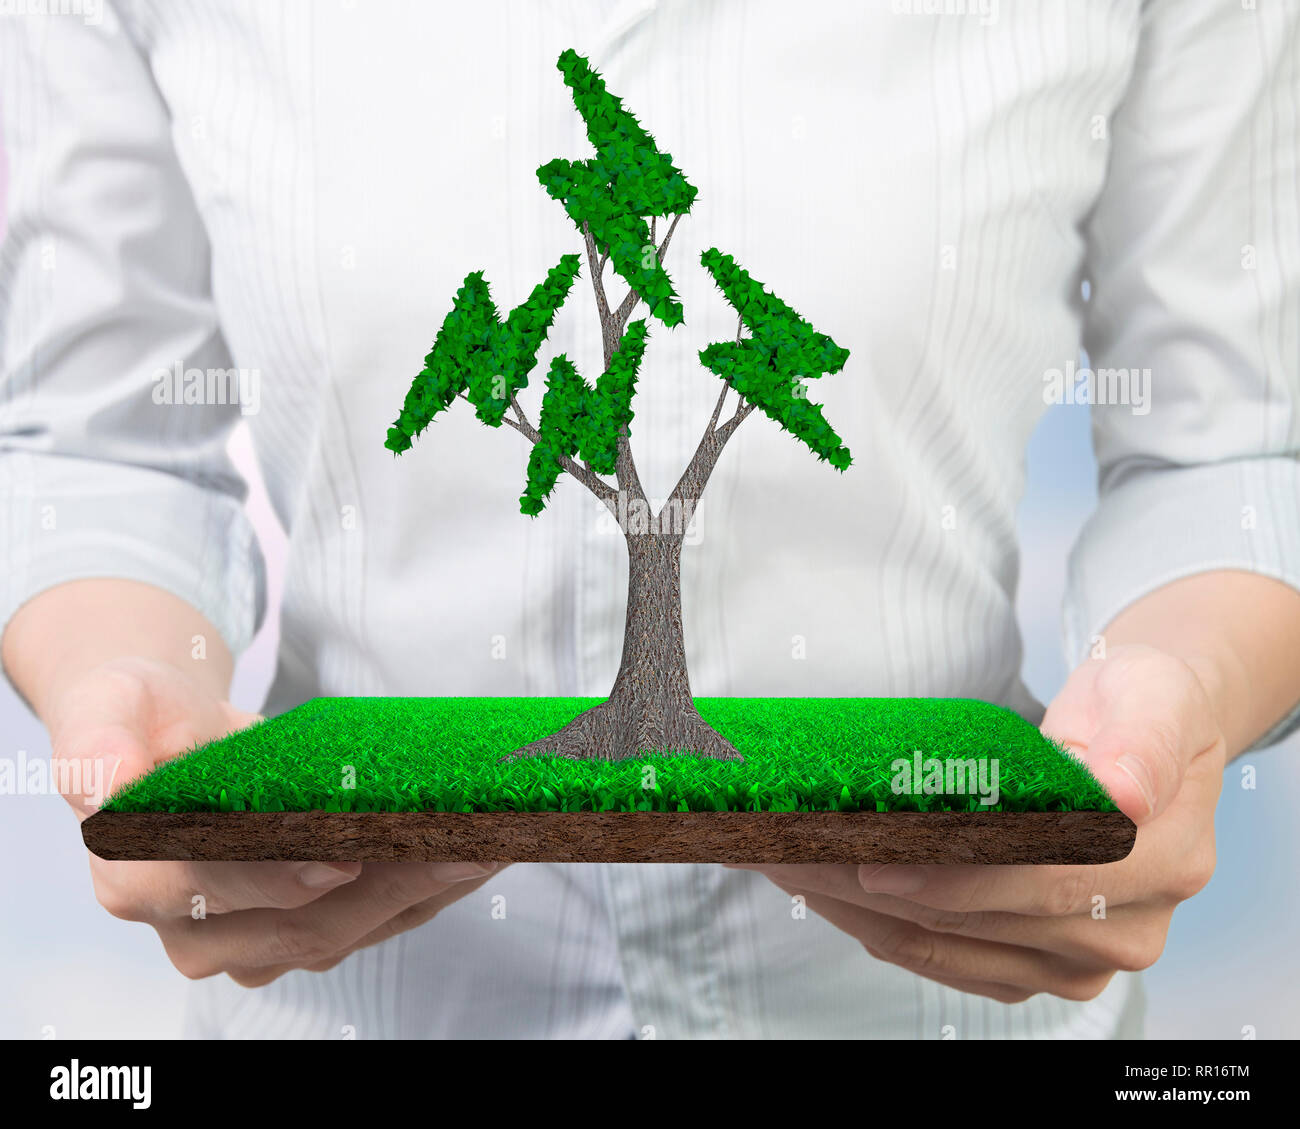 Concept for supply or development of green energy generation